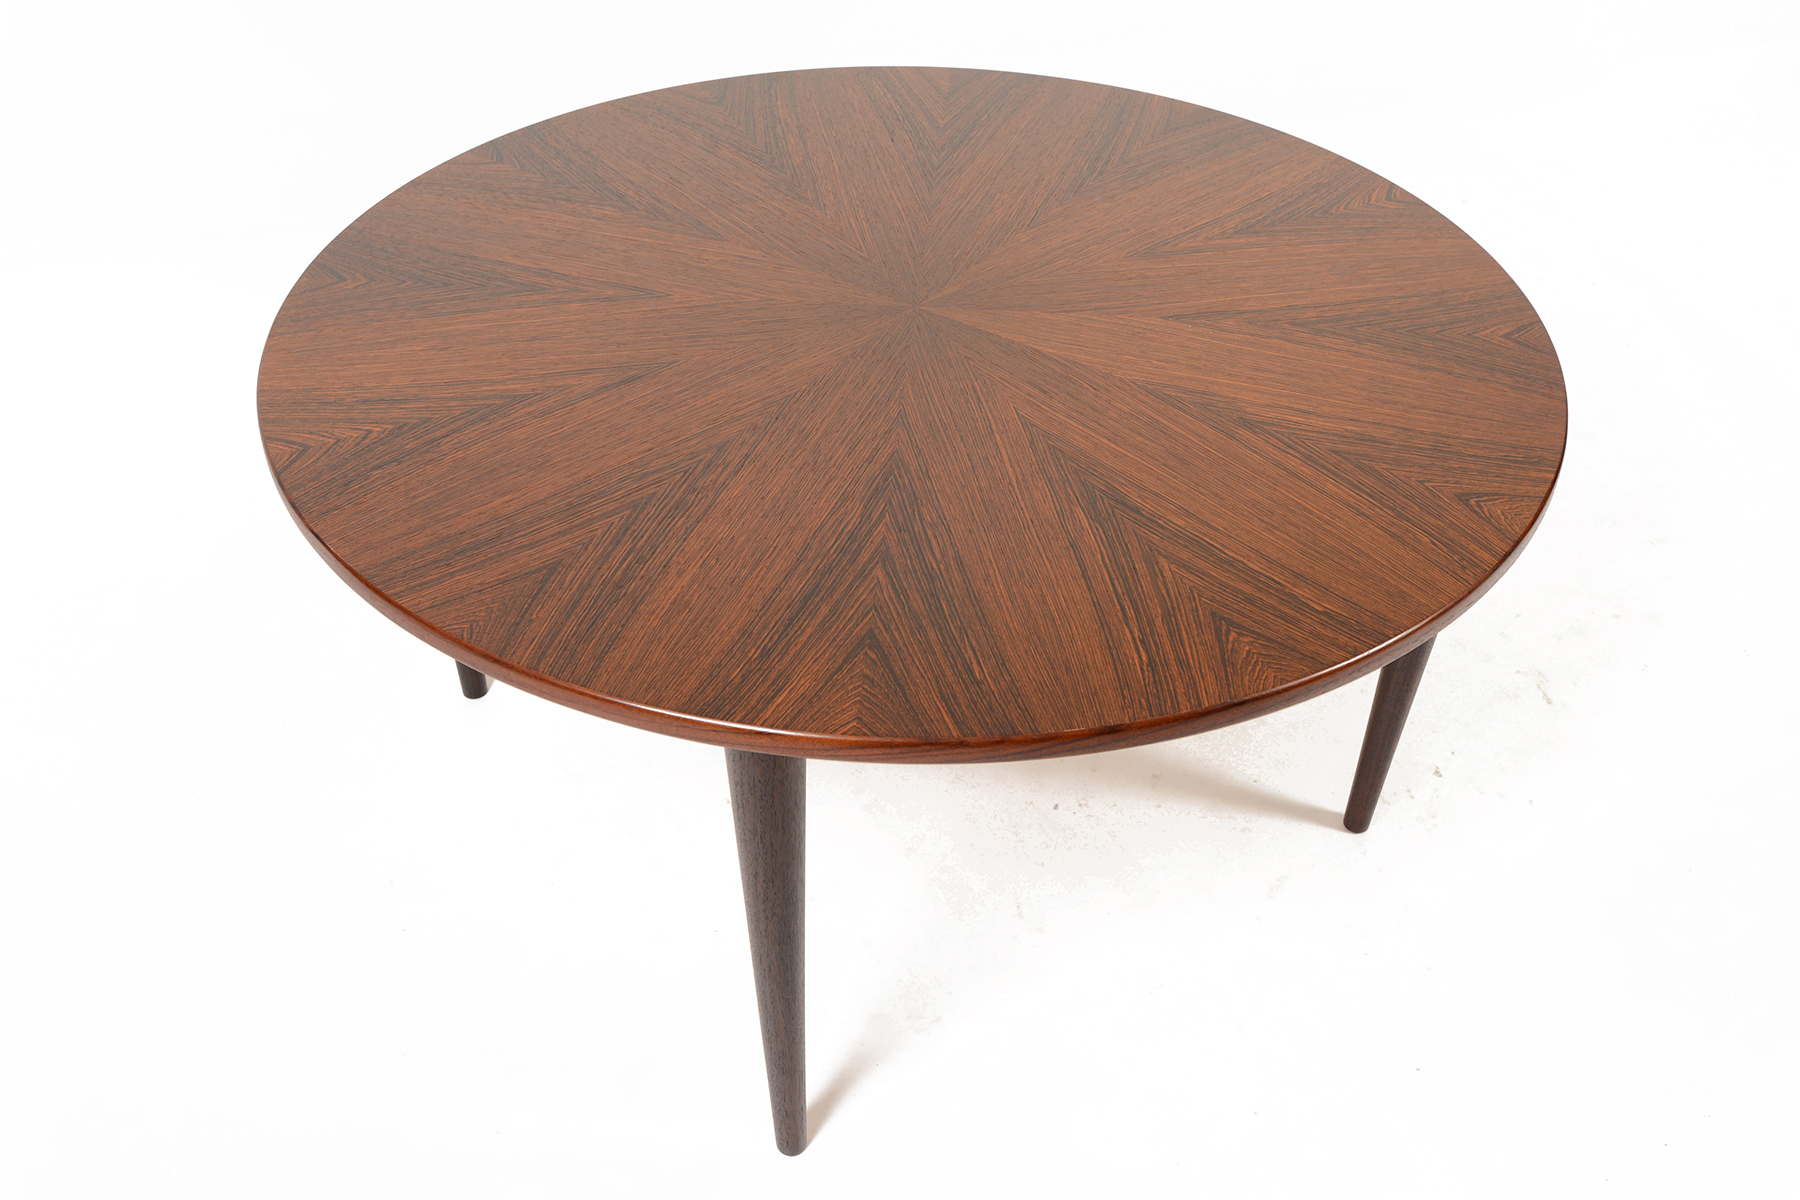 DANISH MODERN ROUND STARBURST ROSEWOOD COFFEE TABLE • Mid Century